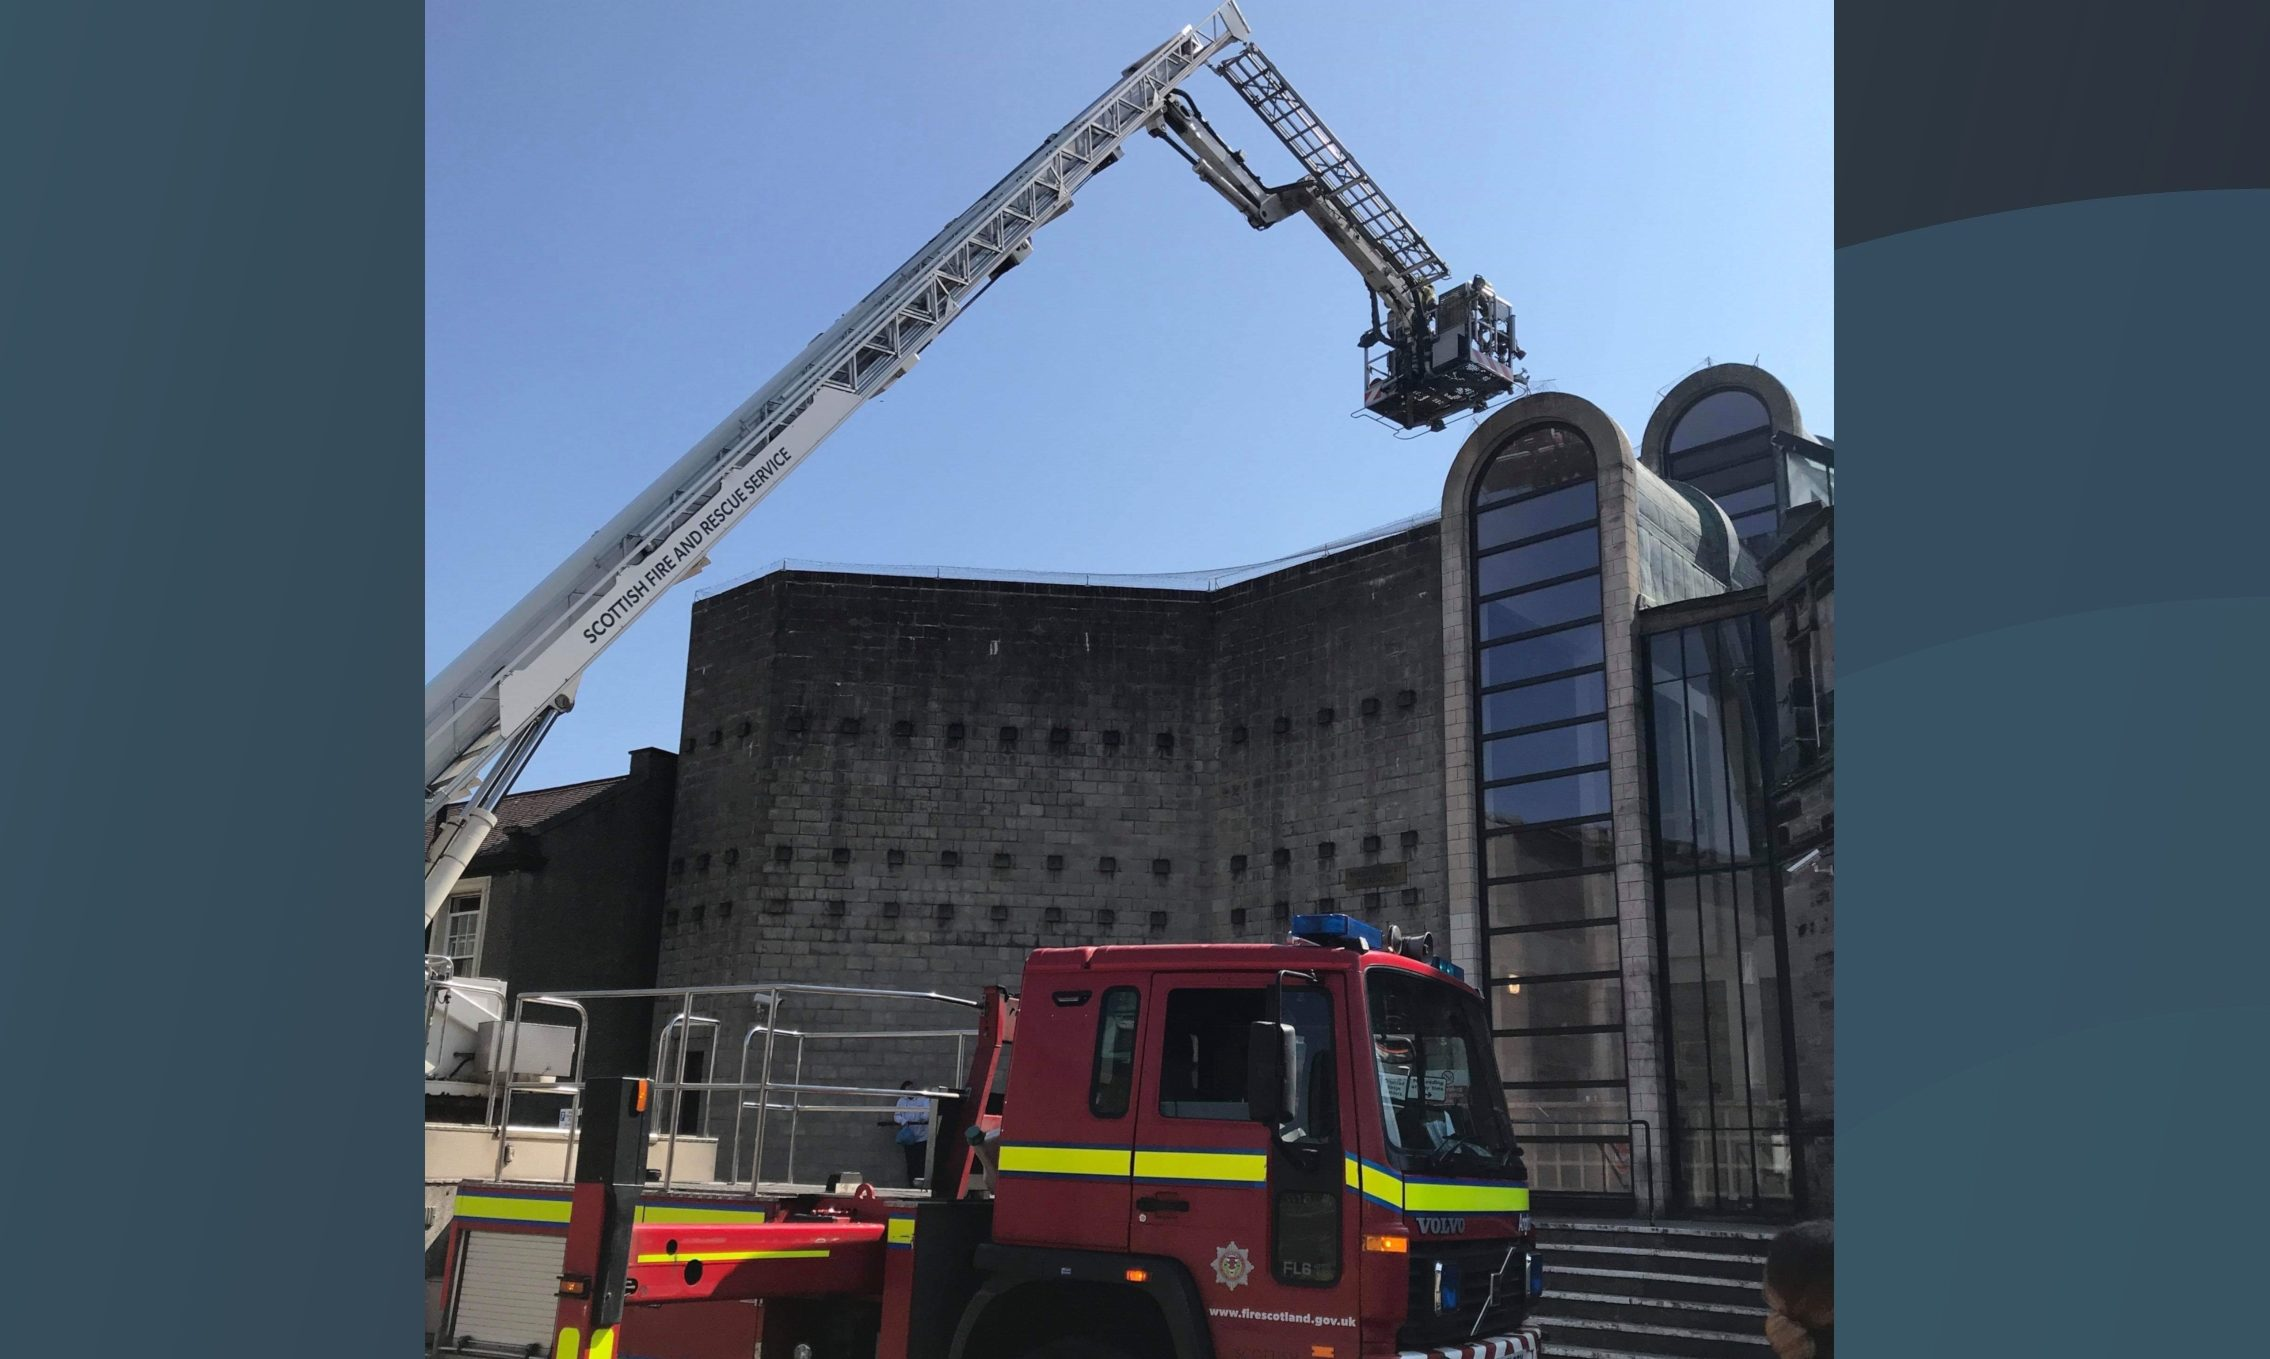 Firefighters at Kirkcaldy Sheriff Court.